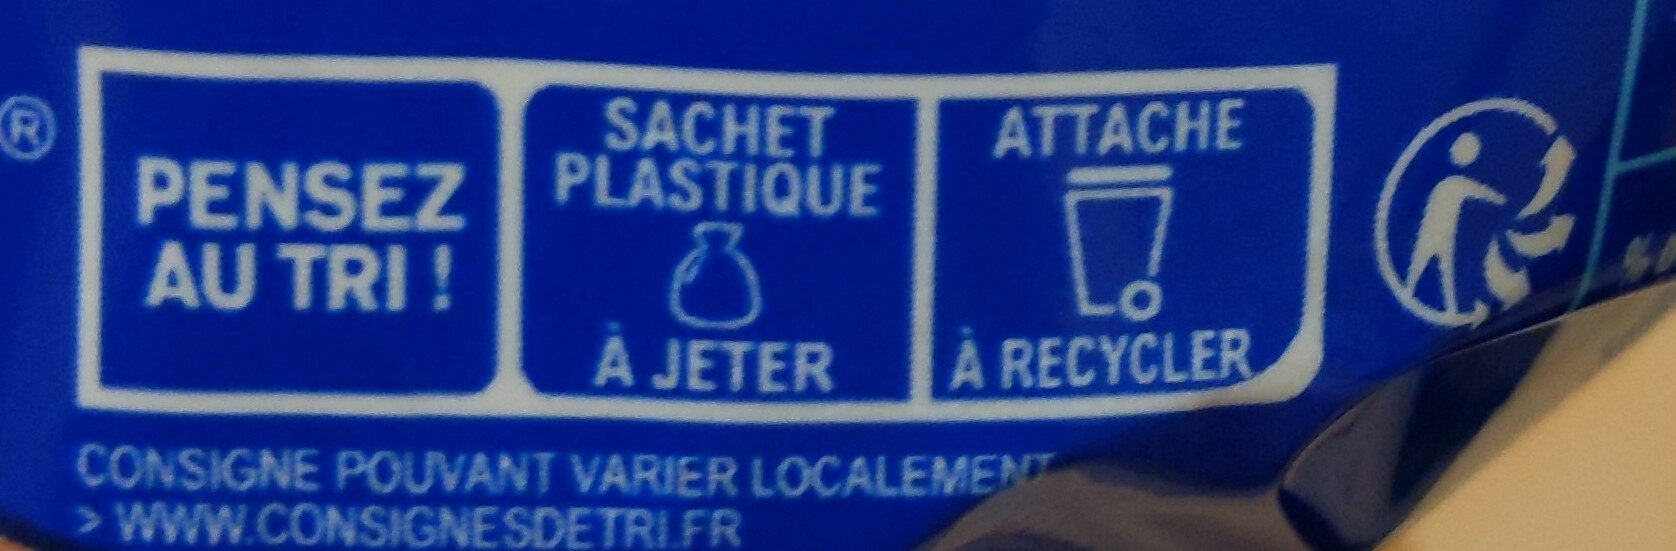 Harrys pain de mie sans sucres ajoutes extra moelleux nature - Recycling instructions and/or packaging information - fr